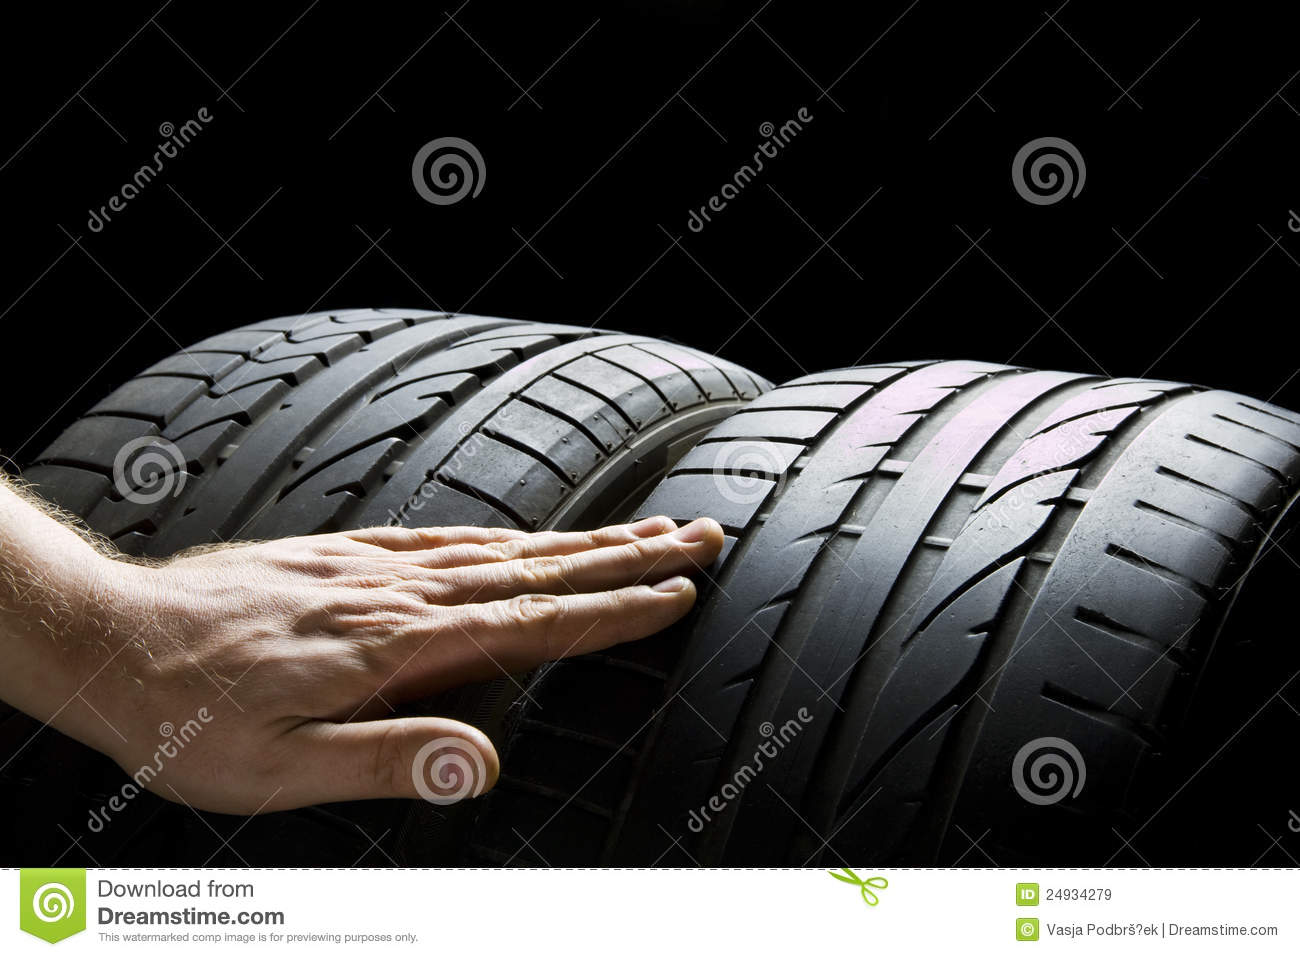 Check tires